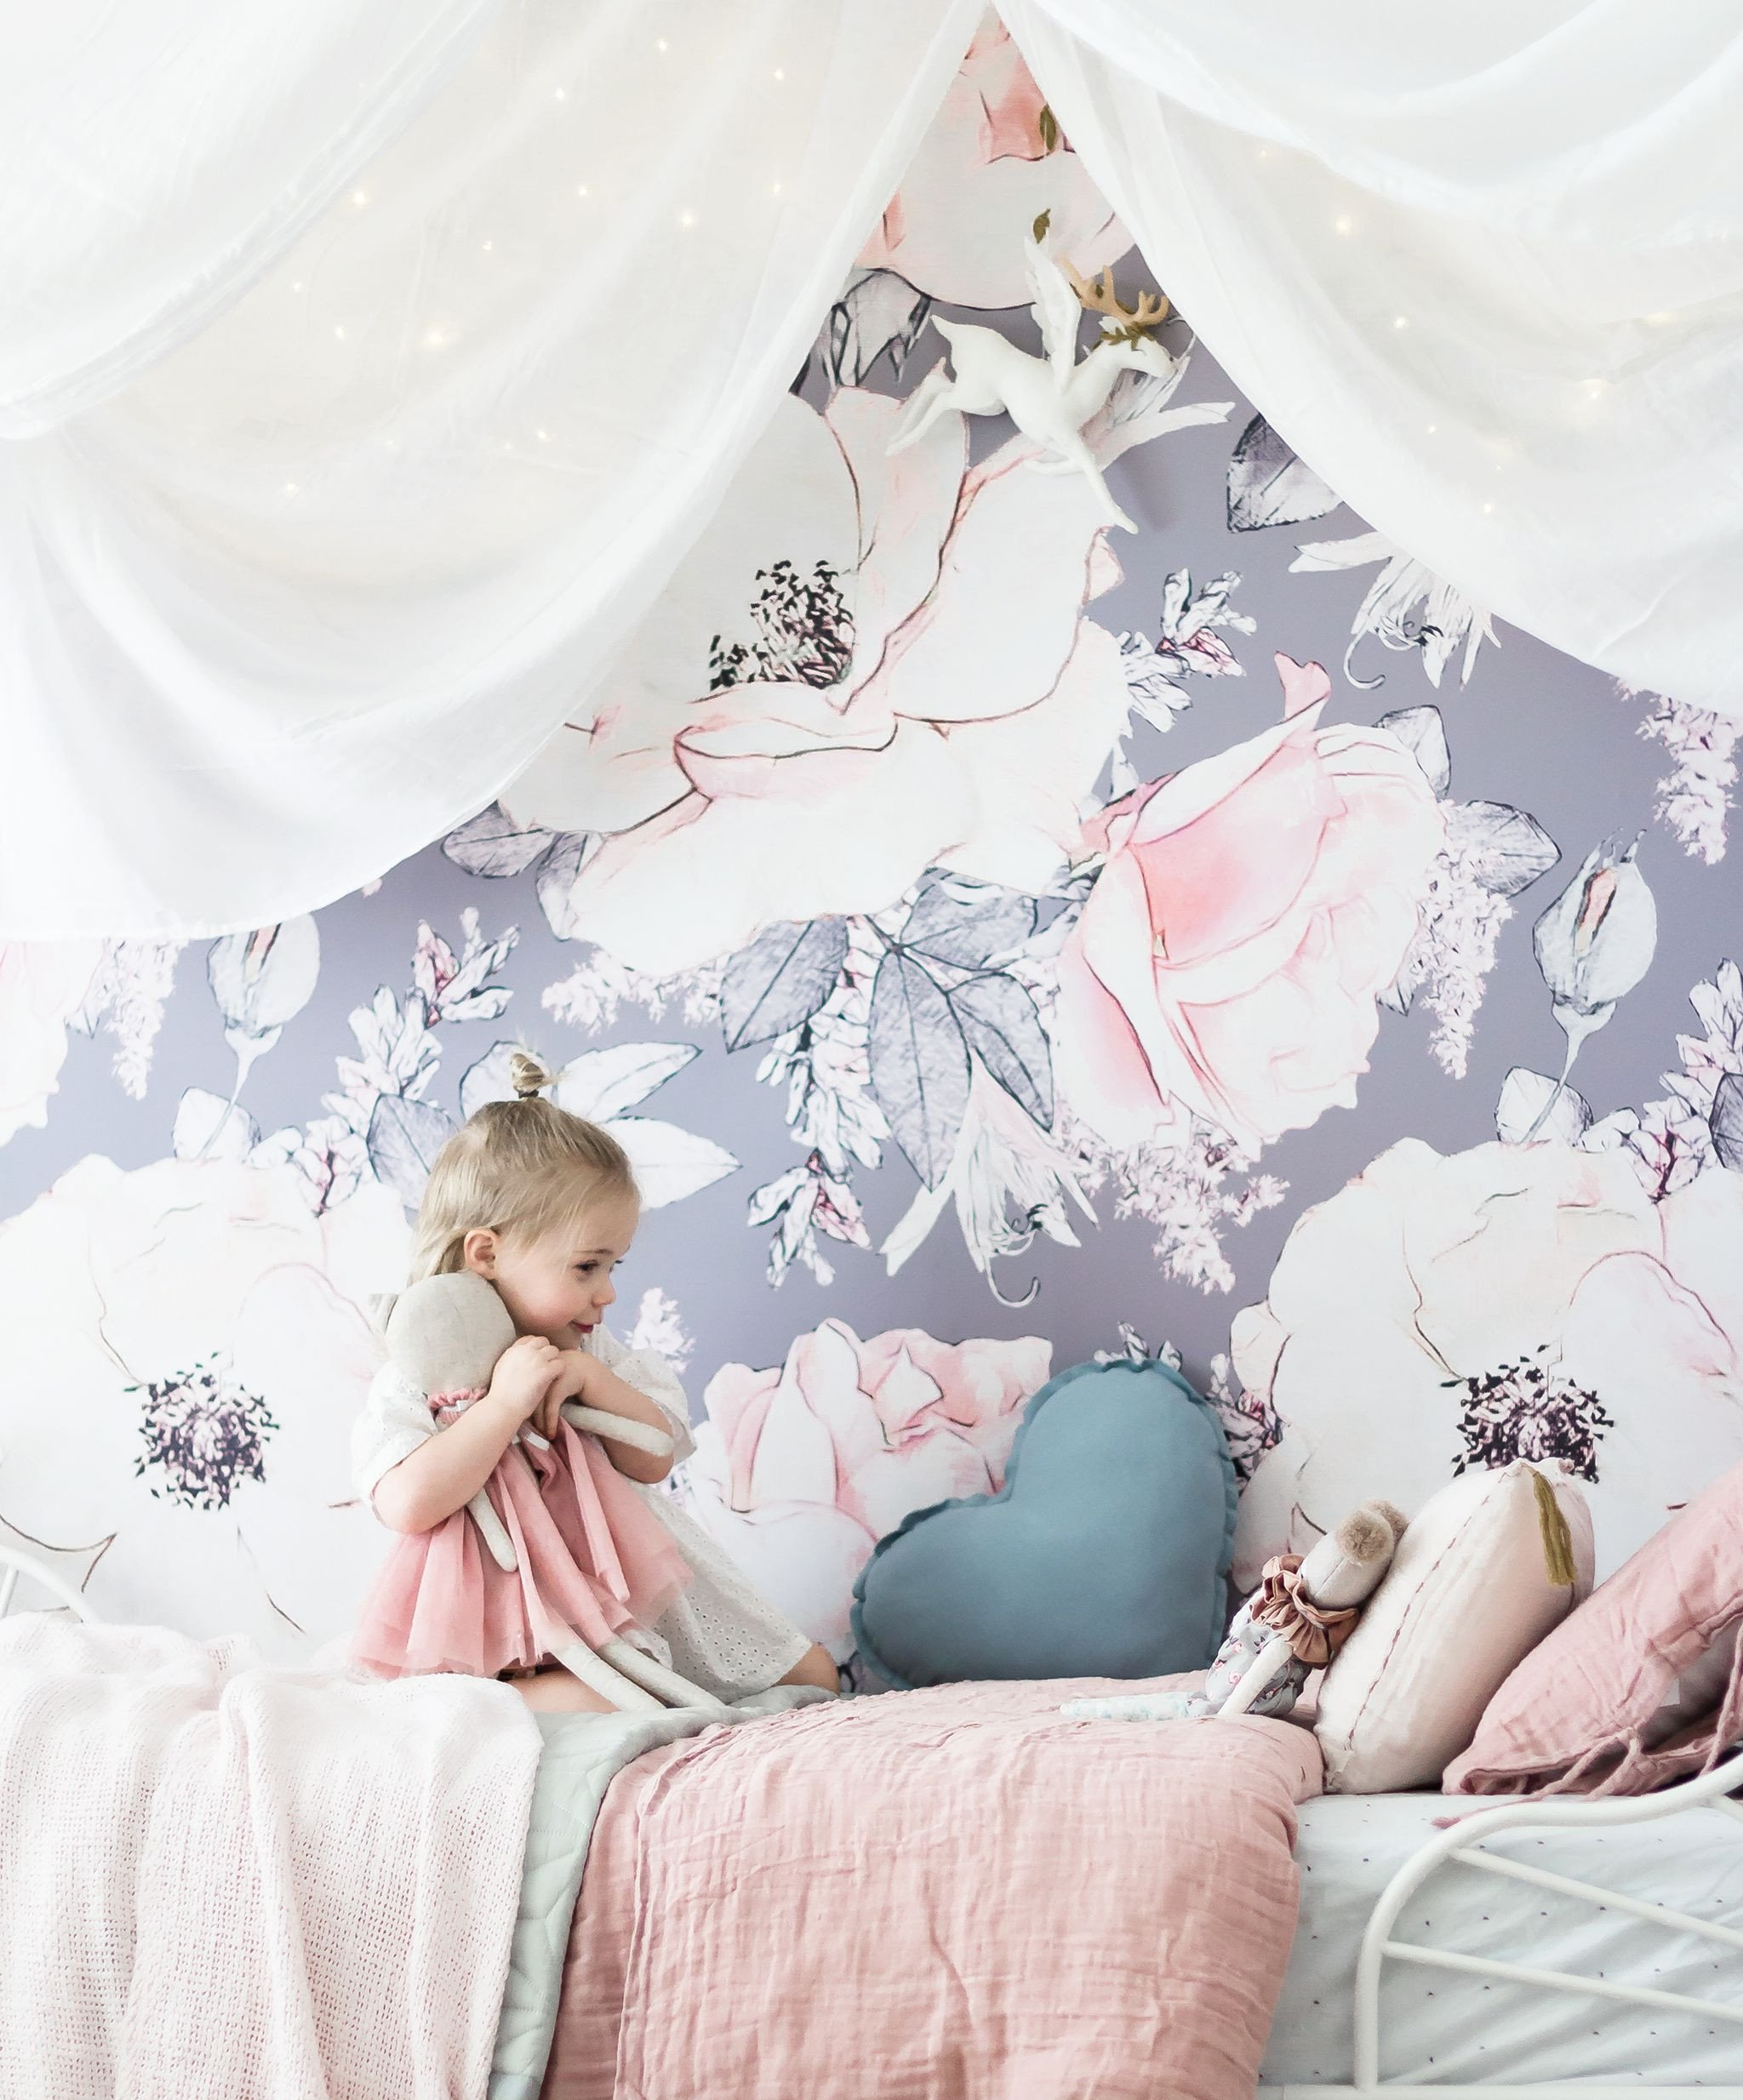 Wallpapers for Girls Bedroom Lovely In the toddler Room with Indi and Bear